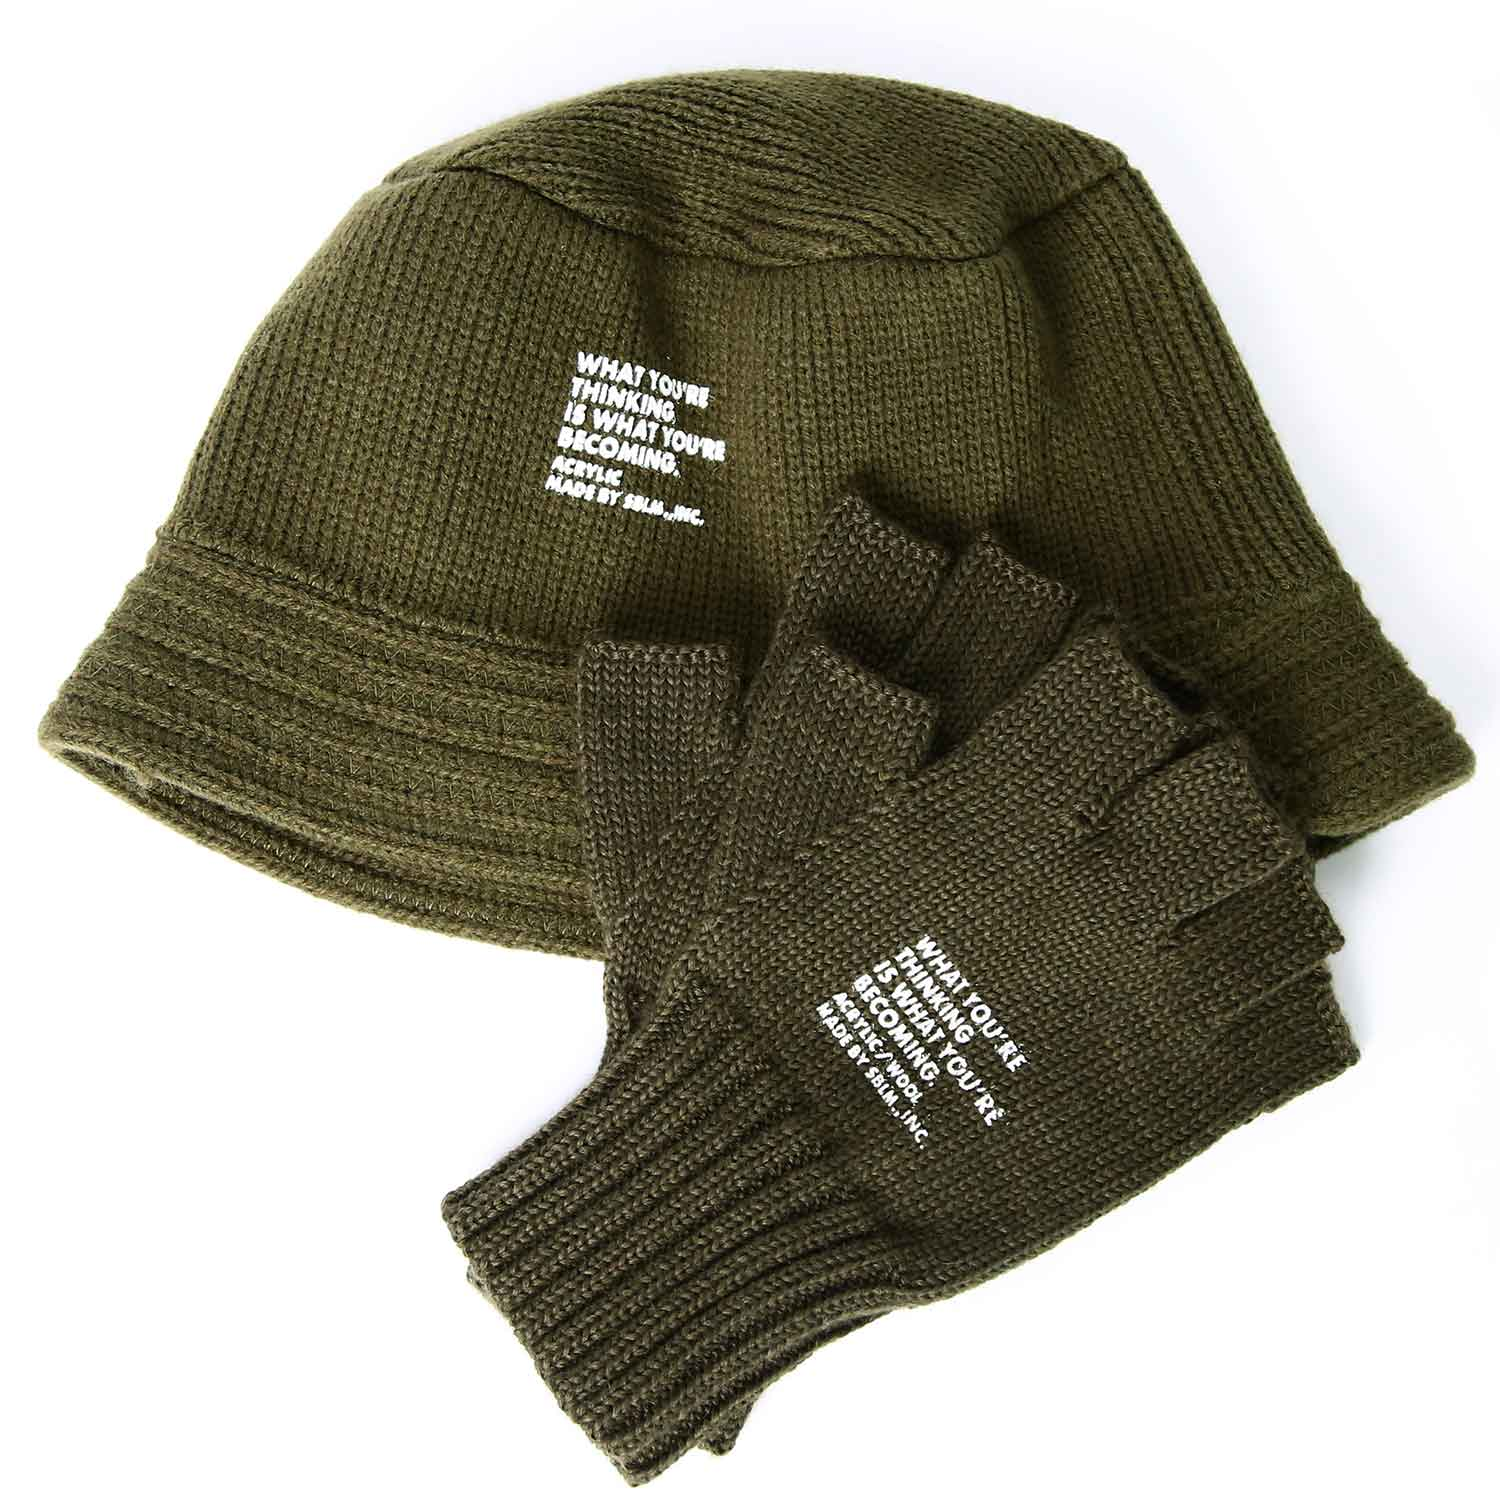 Military Glove And Hat Set - Olive Set